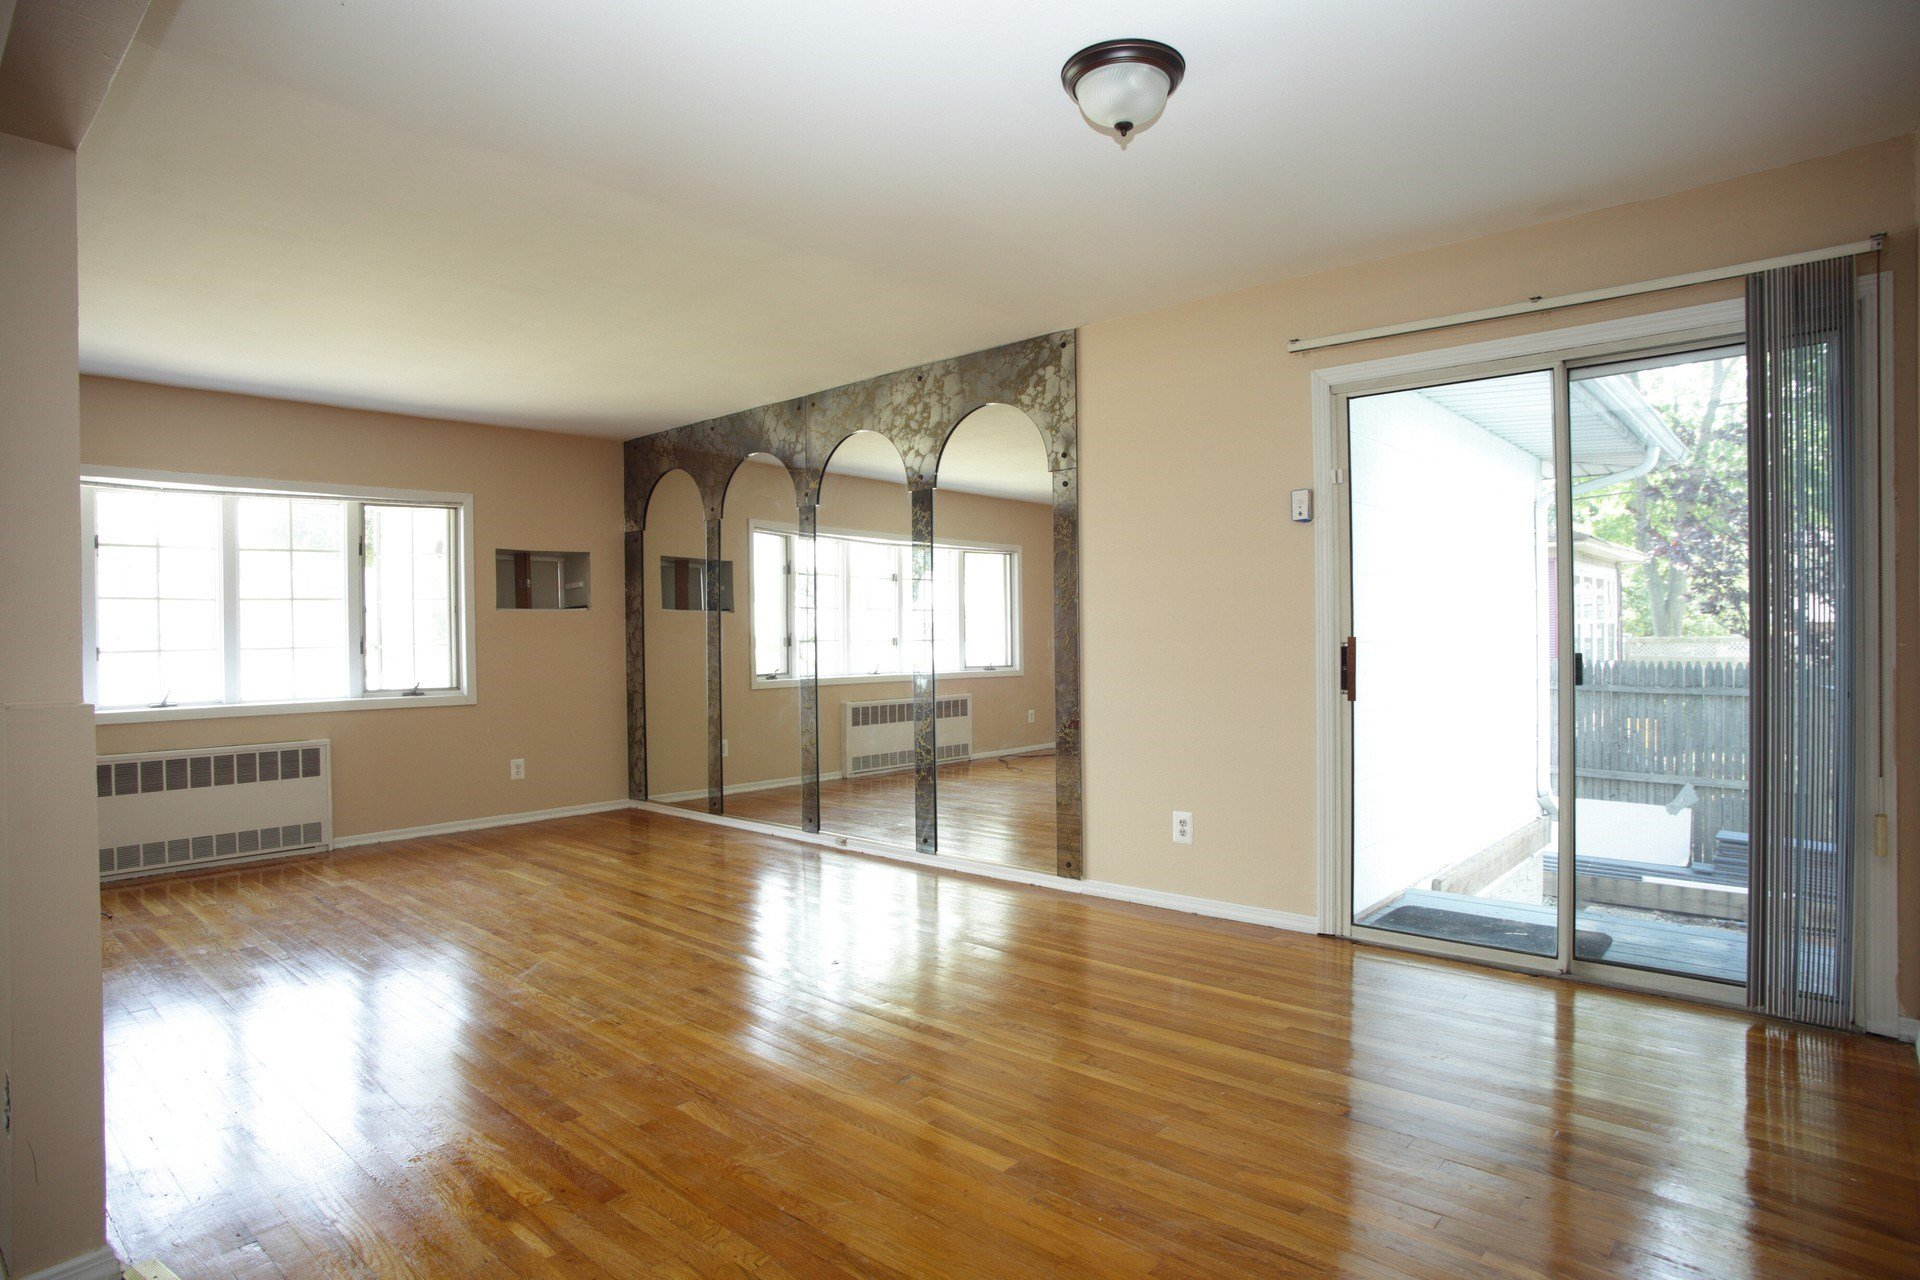 Best Rooms For Rent In New York – Apartments Flats Commercial With Pictures Original 1024 x 768